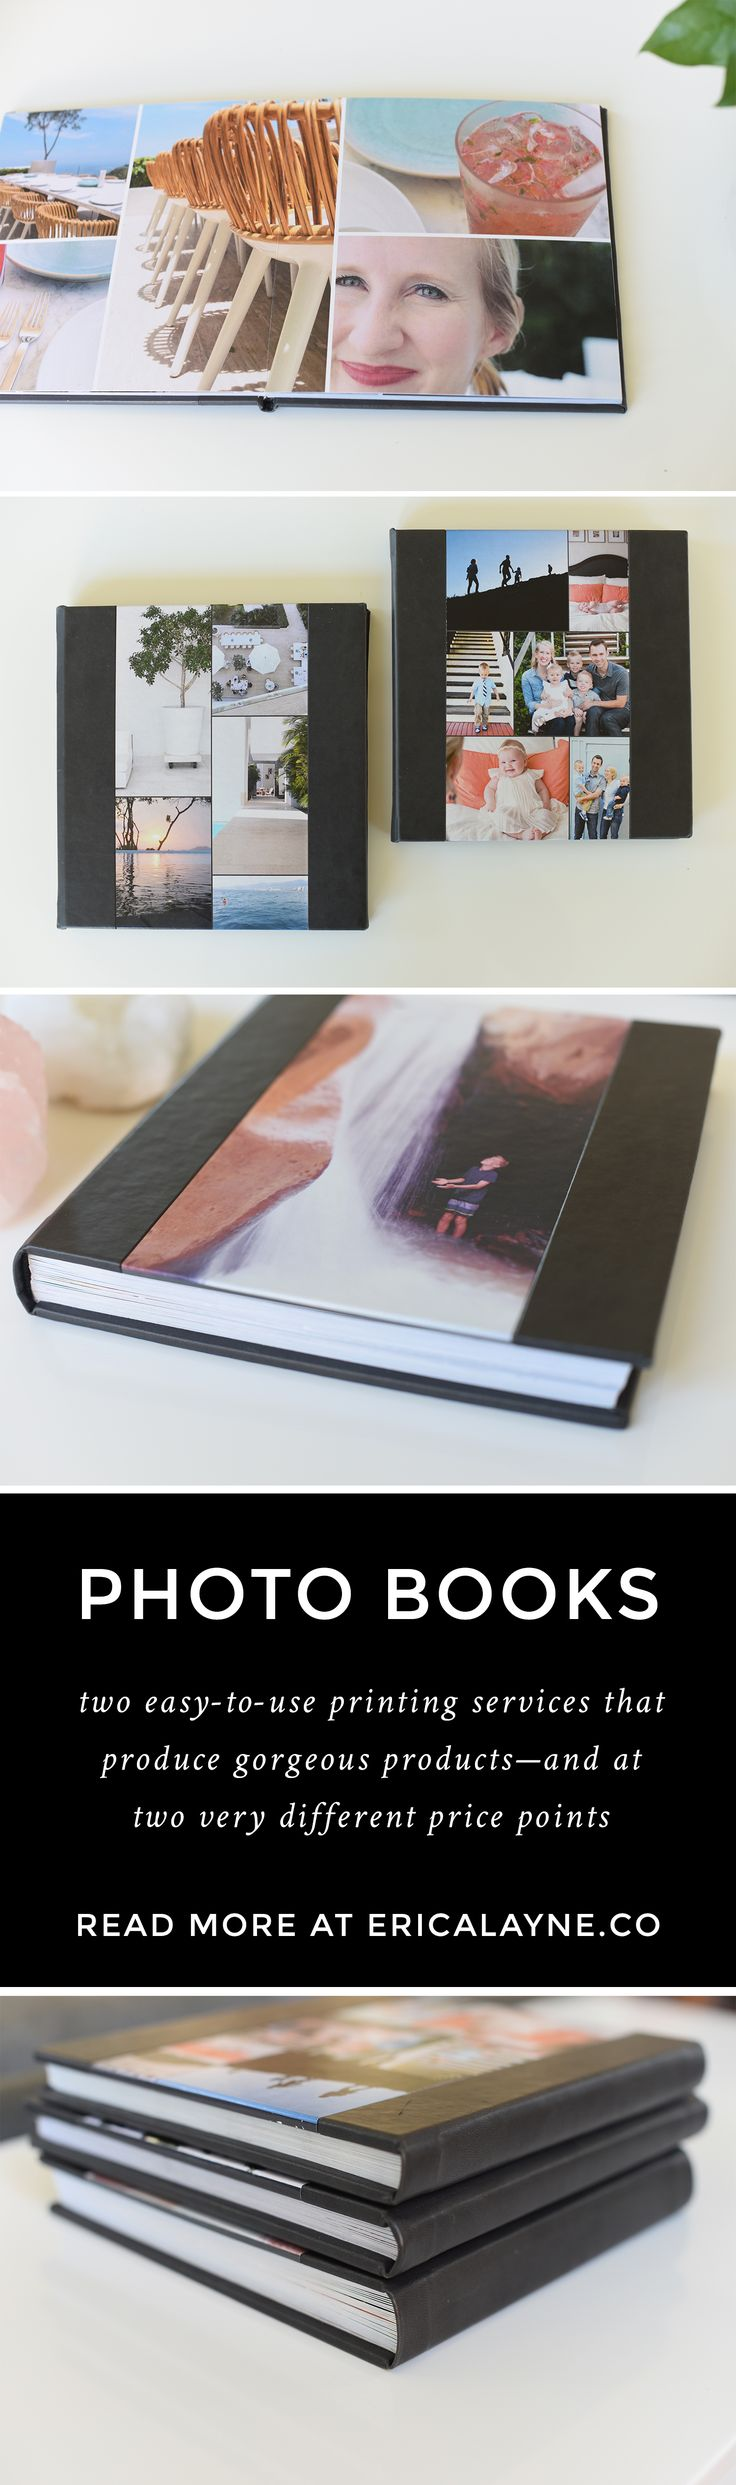 Two photo-book printing services that produce gorgeous products—and at two very different price points!